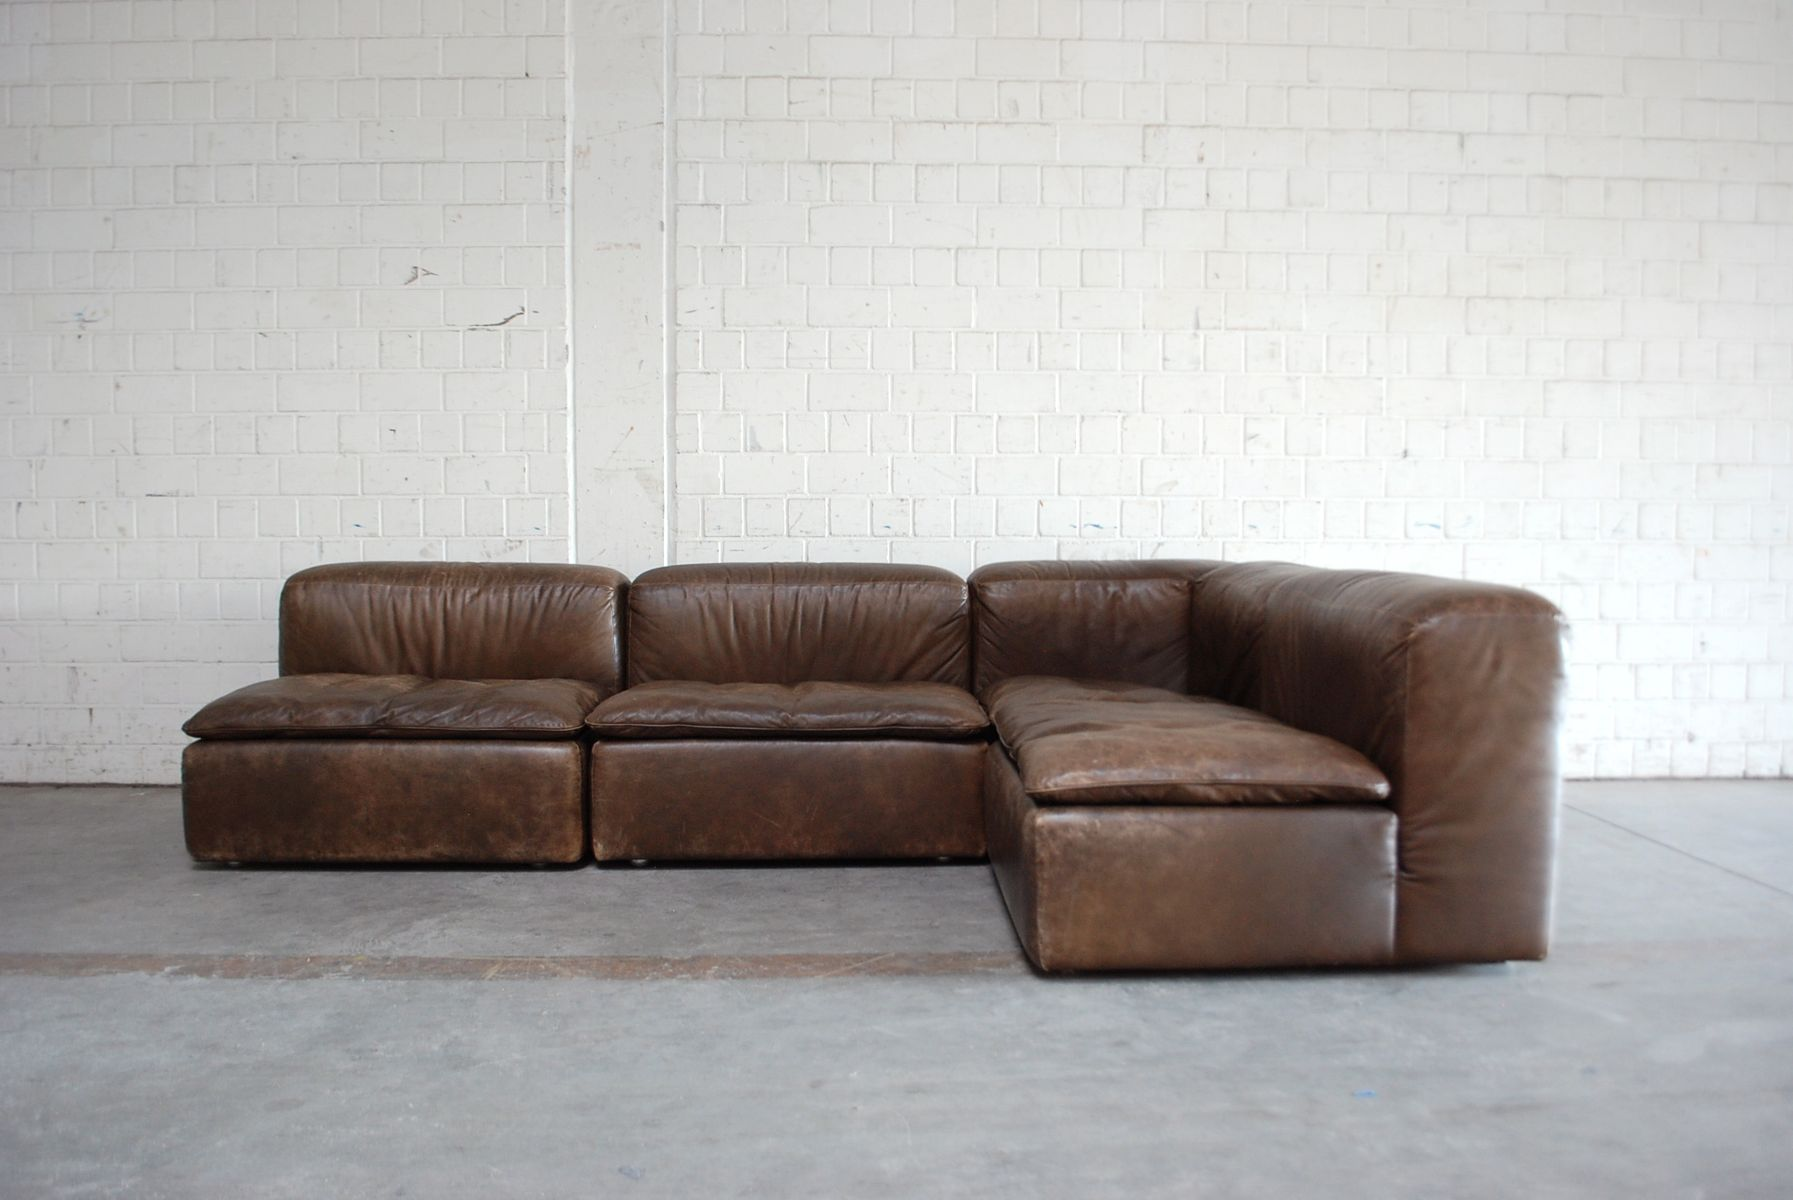 Vintage Modular WK 550 Leather Sofa Set By Ernst Martin Dettinger For WK  Möbel, Set Of 4